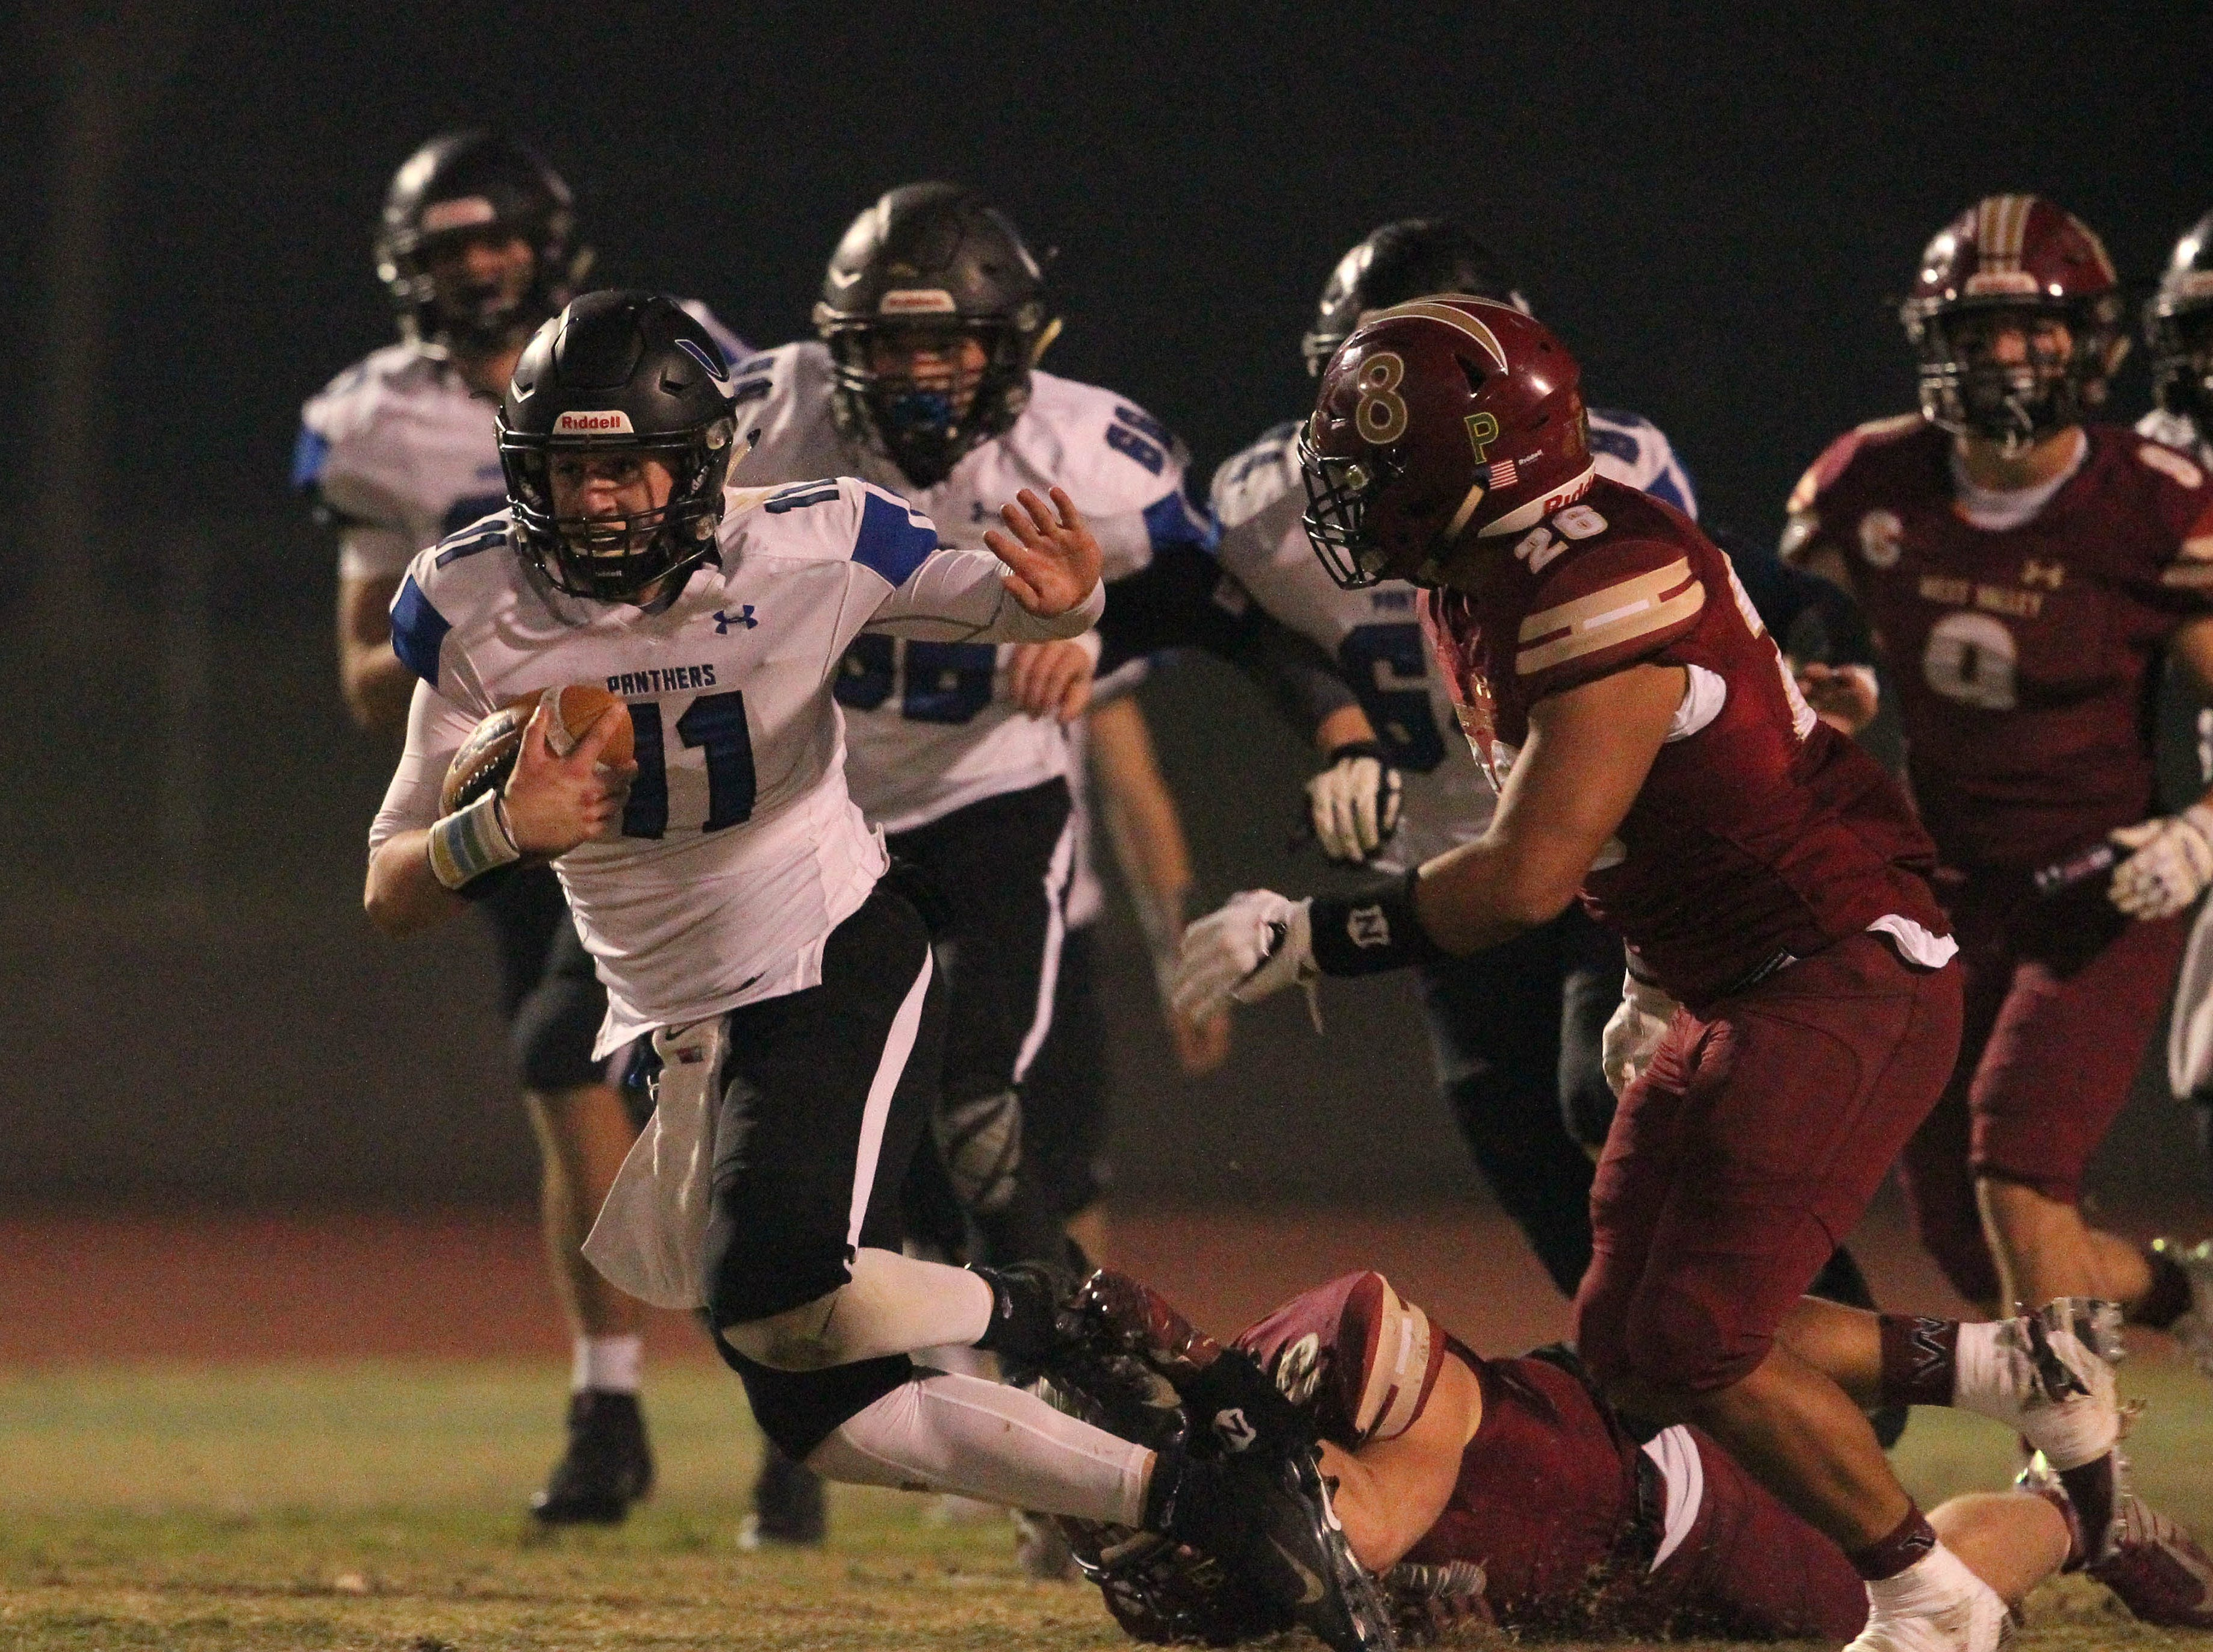 U-Prep QB Dylan Cabral (11) tries to run for a first down against West Valley's Bailey Sulzer (13) and Joshua Aguilar (26) in the 3rd quarter on Friday, Nov. 9.  The Eagles defeated the Panthers, 55 -6, at home to advance to the 2nd round against Lassen on Nov. 16.